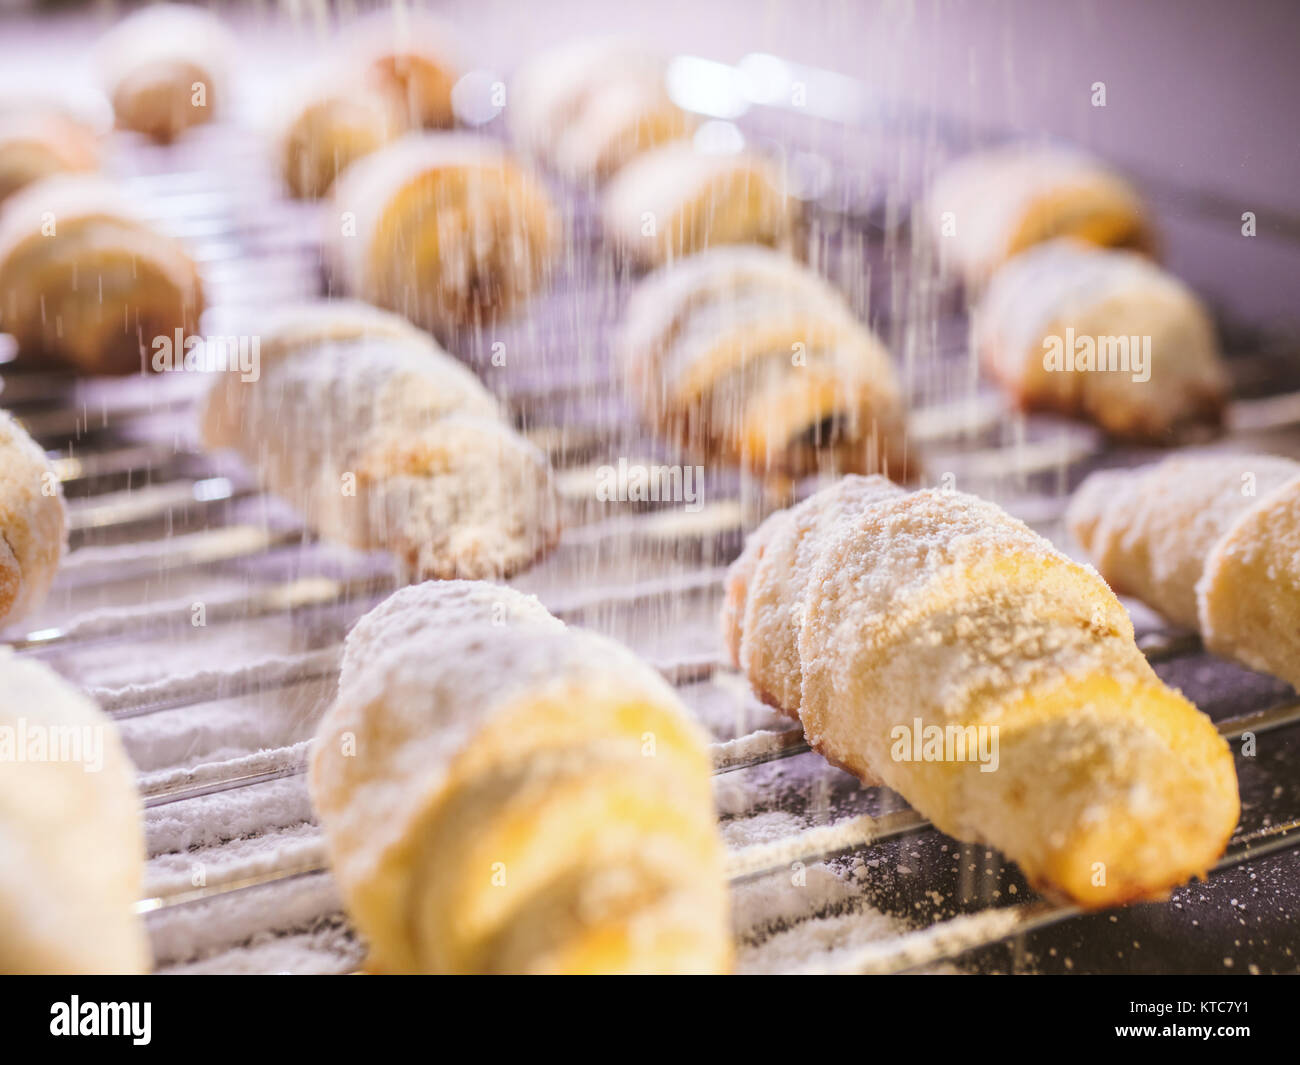 Freshly baked cookies with powdered sugar pouring over them from the sifter. - Stock Image